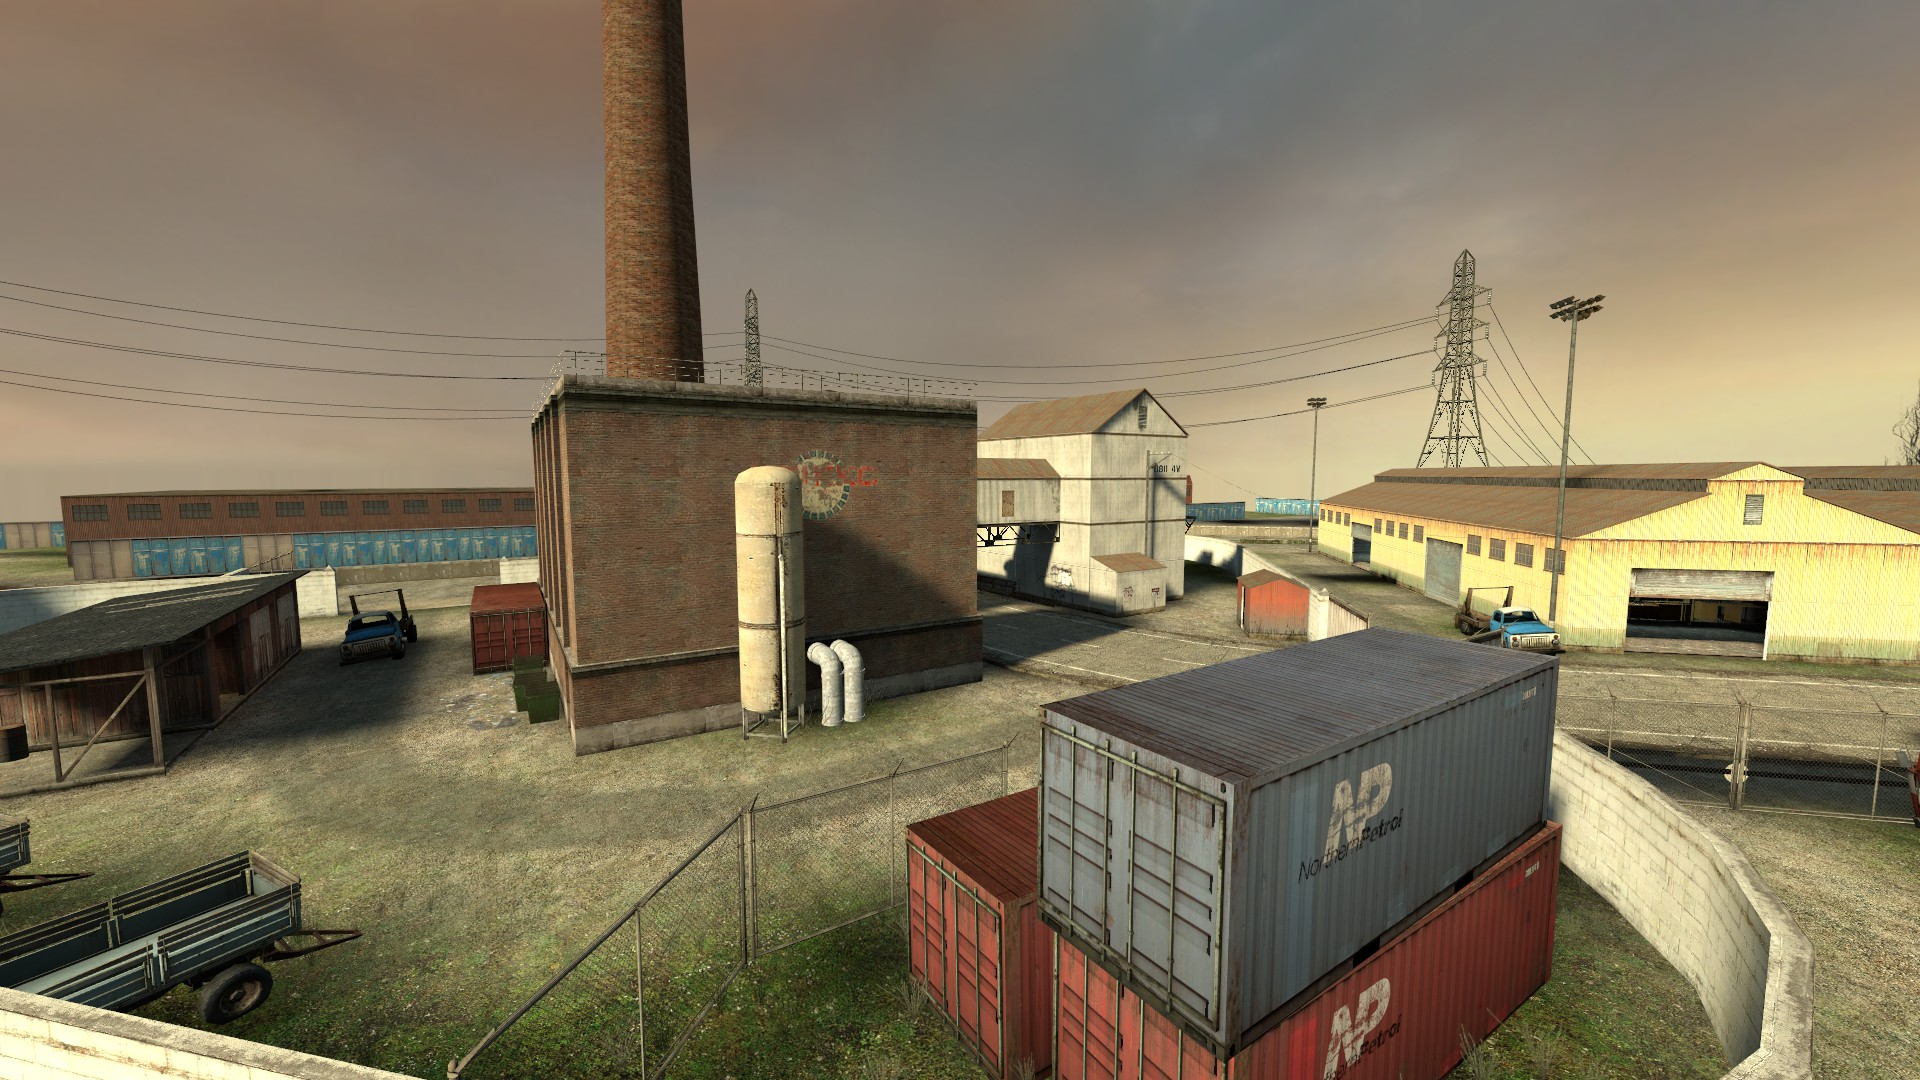 Counter Strike Source Maps Compound | Counter Strike Wiki | FANDOM powered by Wikia